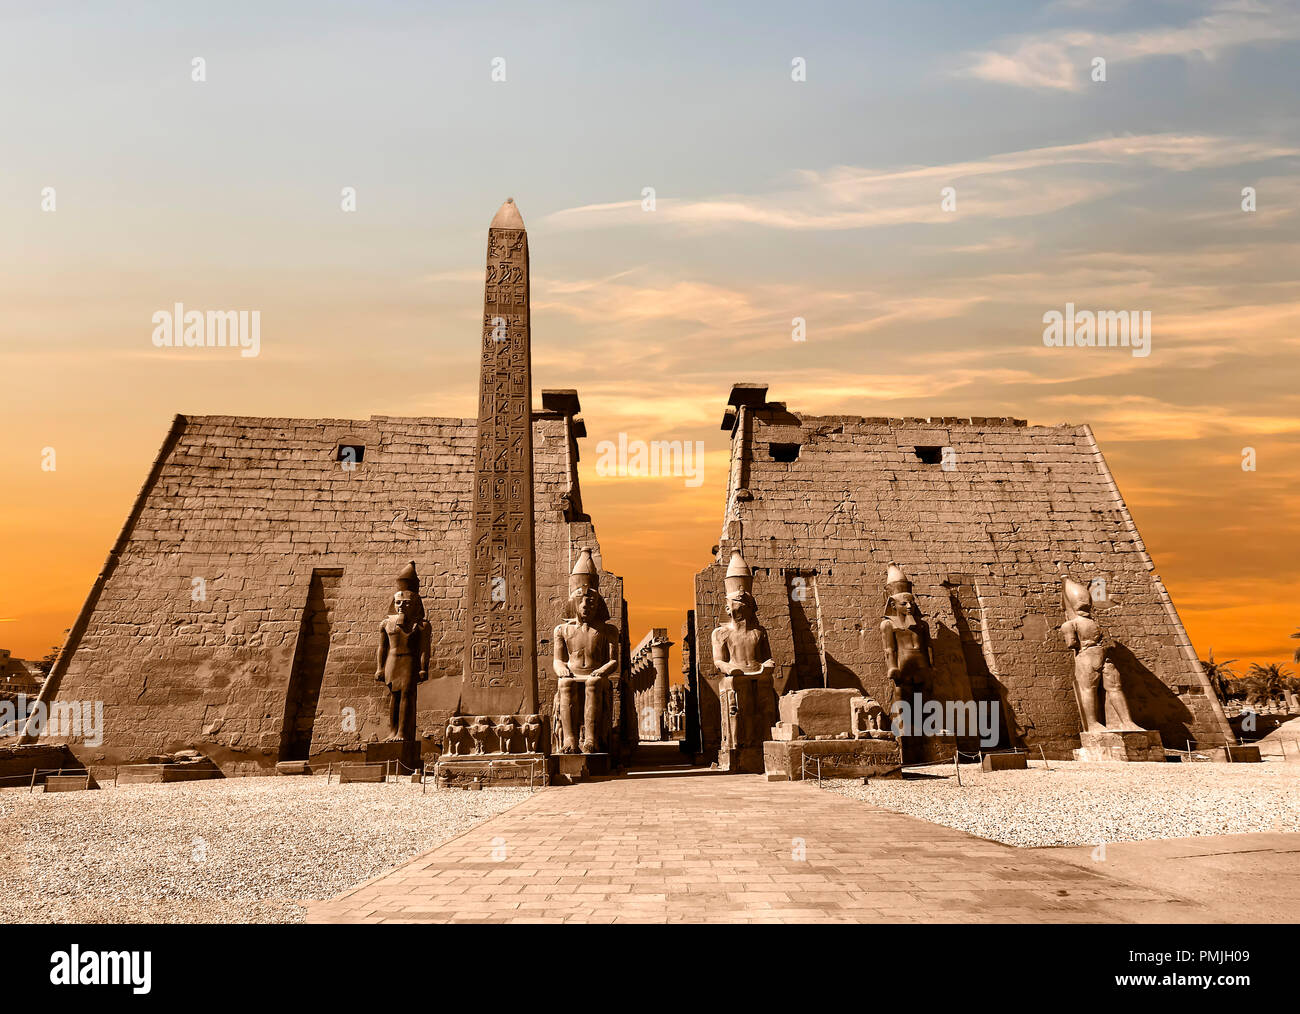 Entrance to Luxor Temple at sunset, a large Ancient Egyptian temple complex located on the east bank of the Nile River in the city today known as Luxo - Stock Image